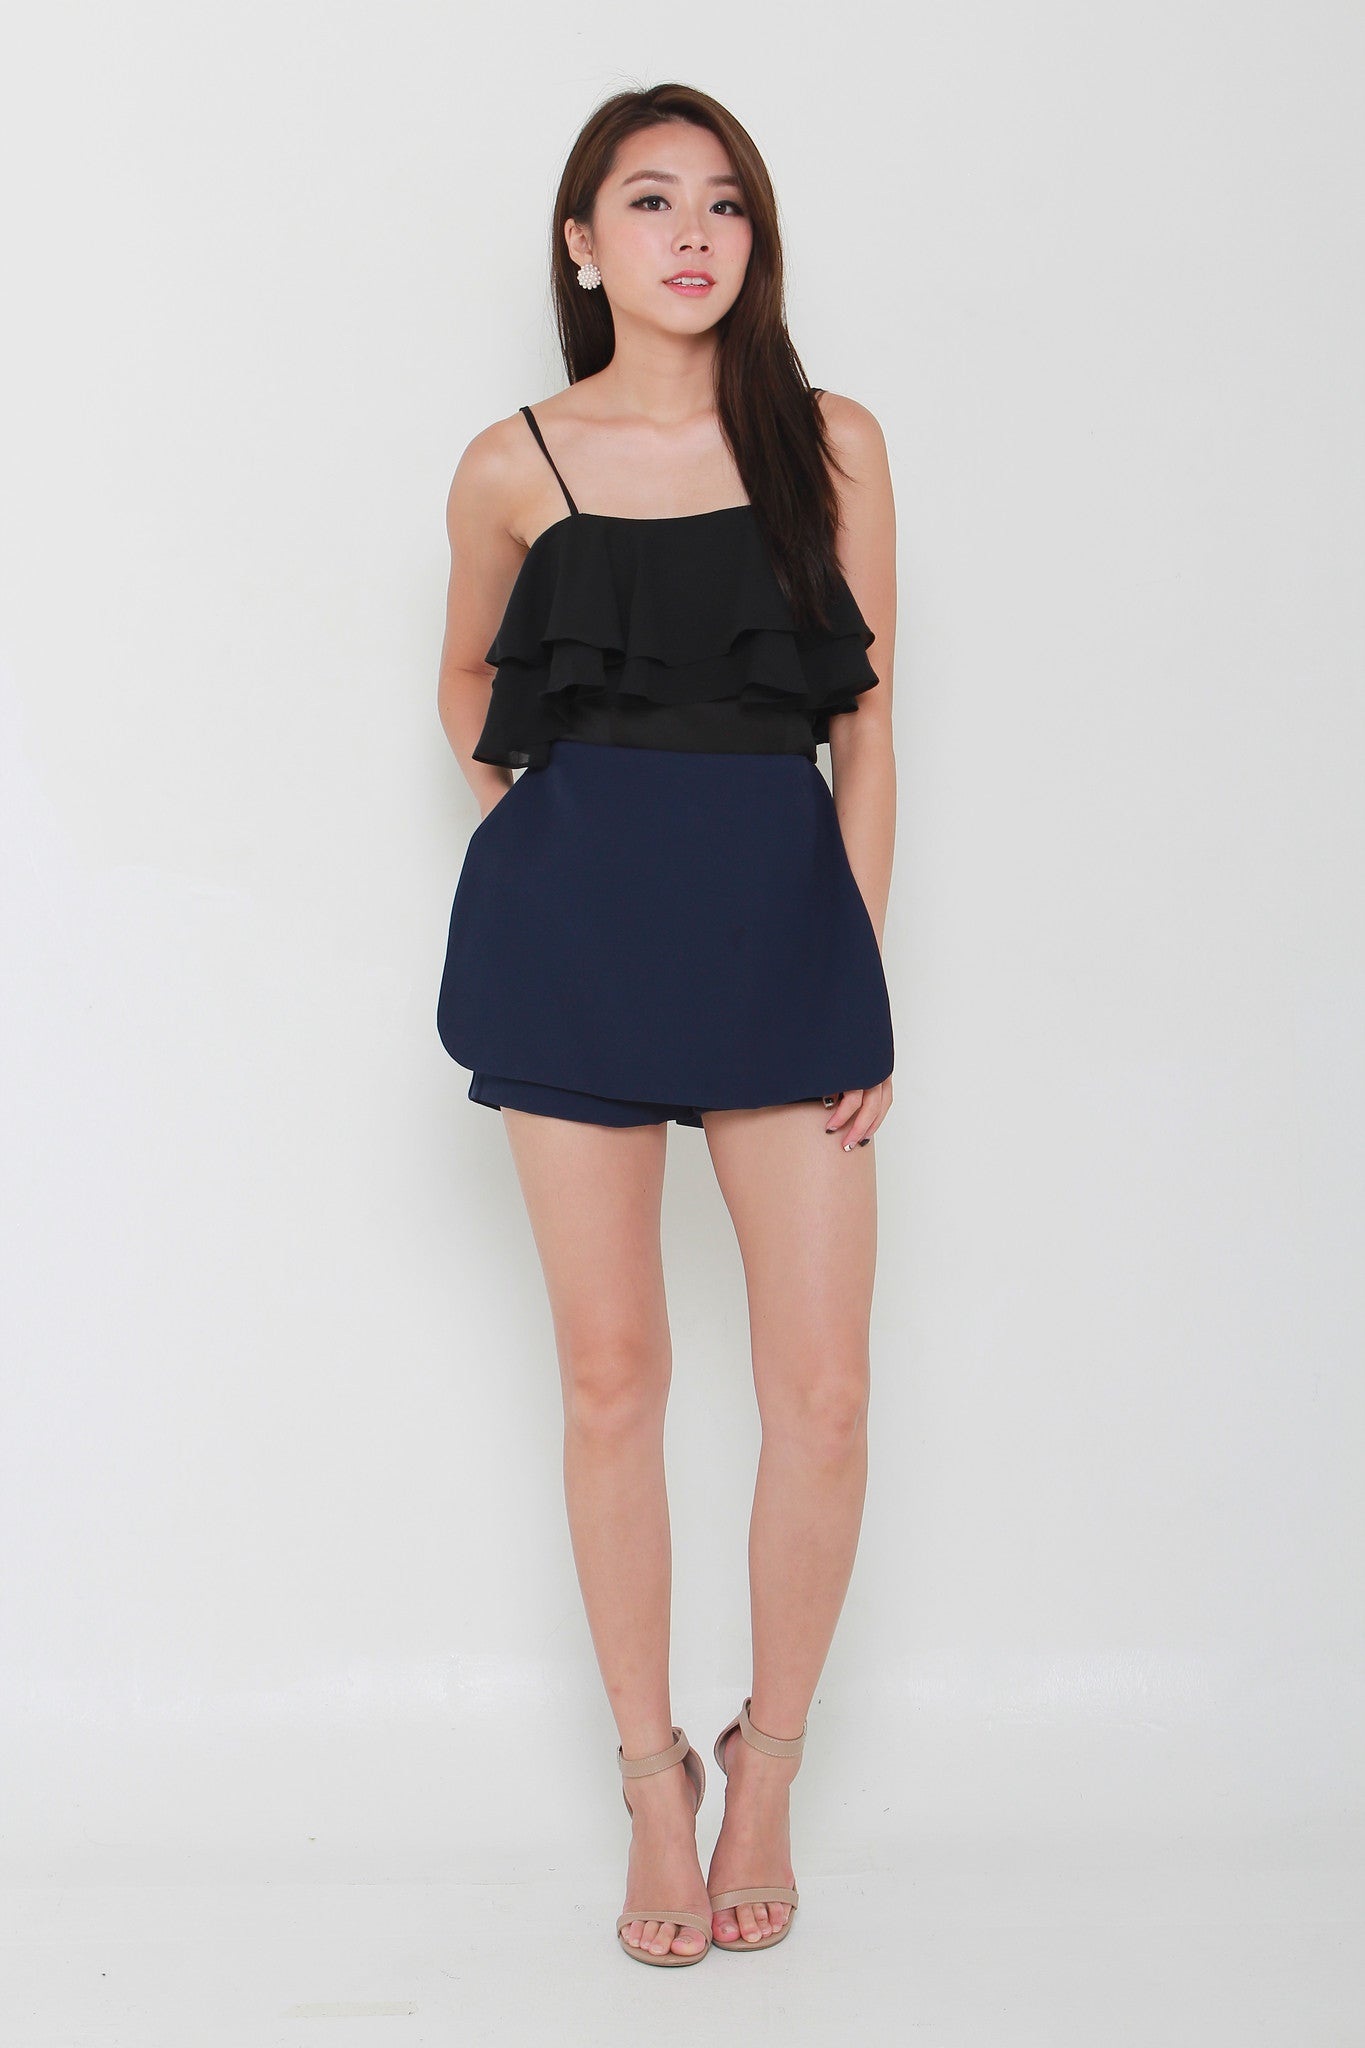 Lexie Tailored Skorts in Navy Blue